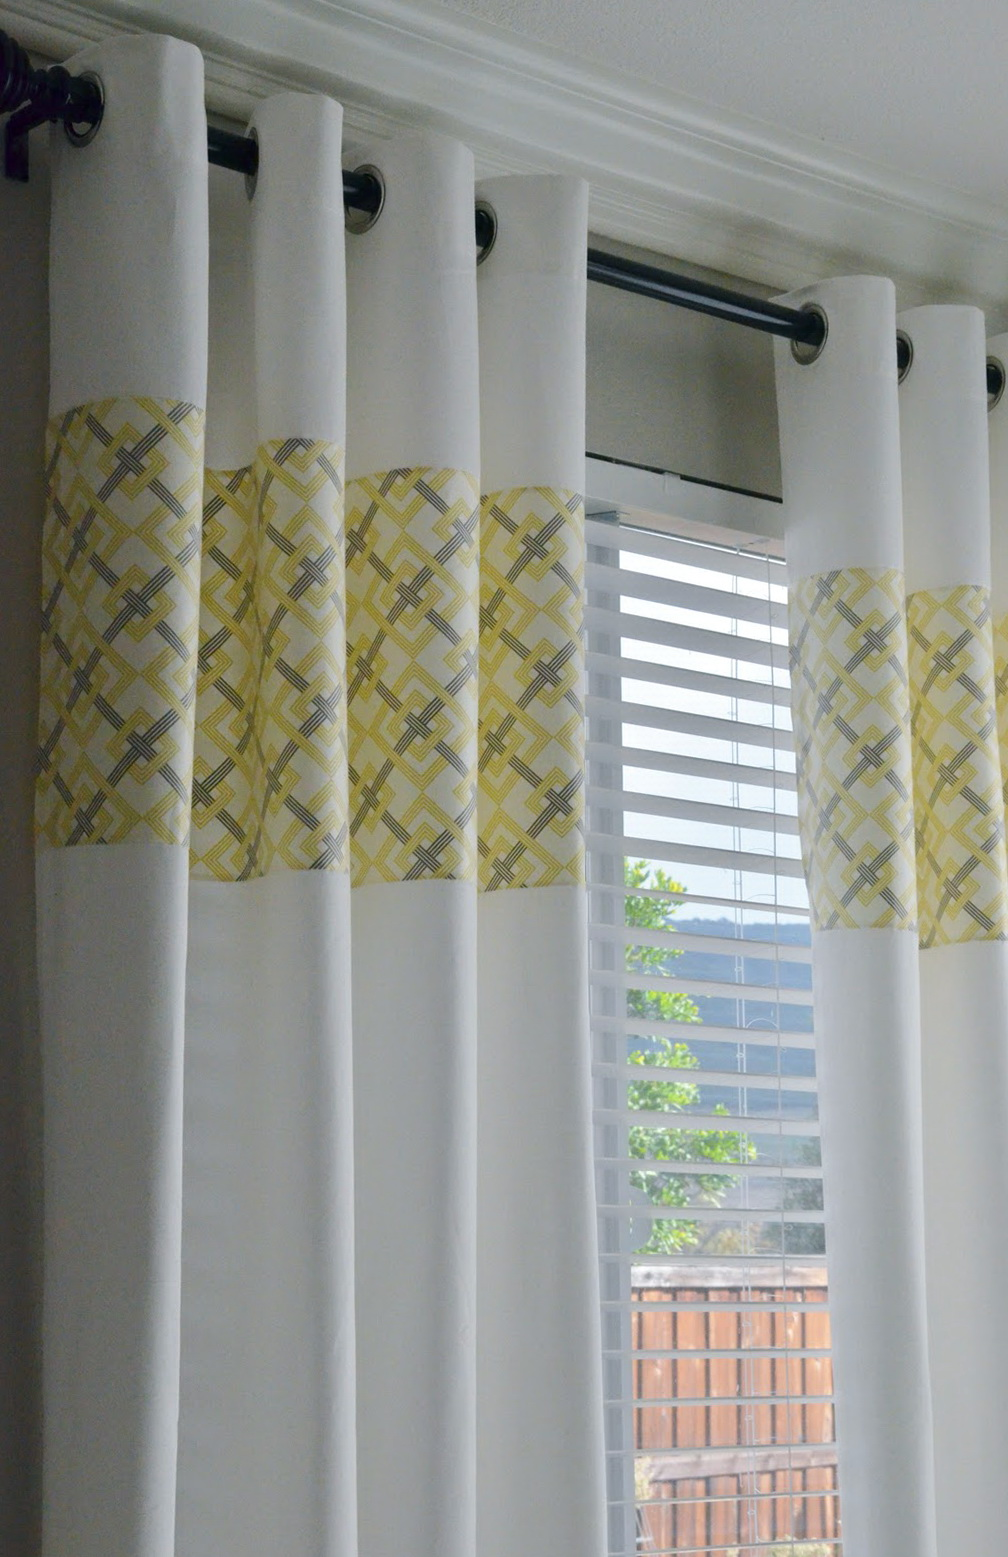 Interior Design Reddit Yellow And Grey Window Curtains | Home Design Ideas